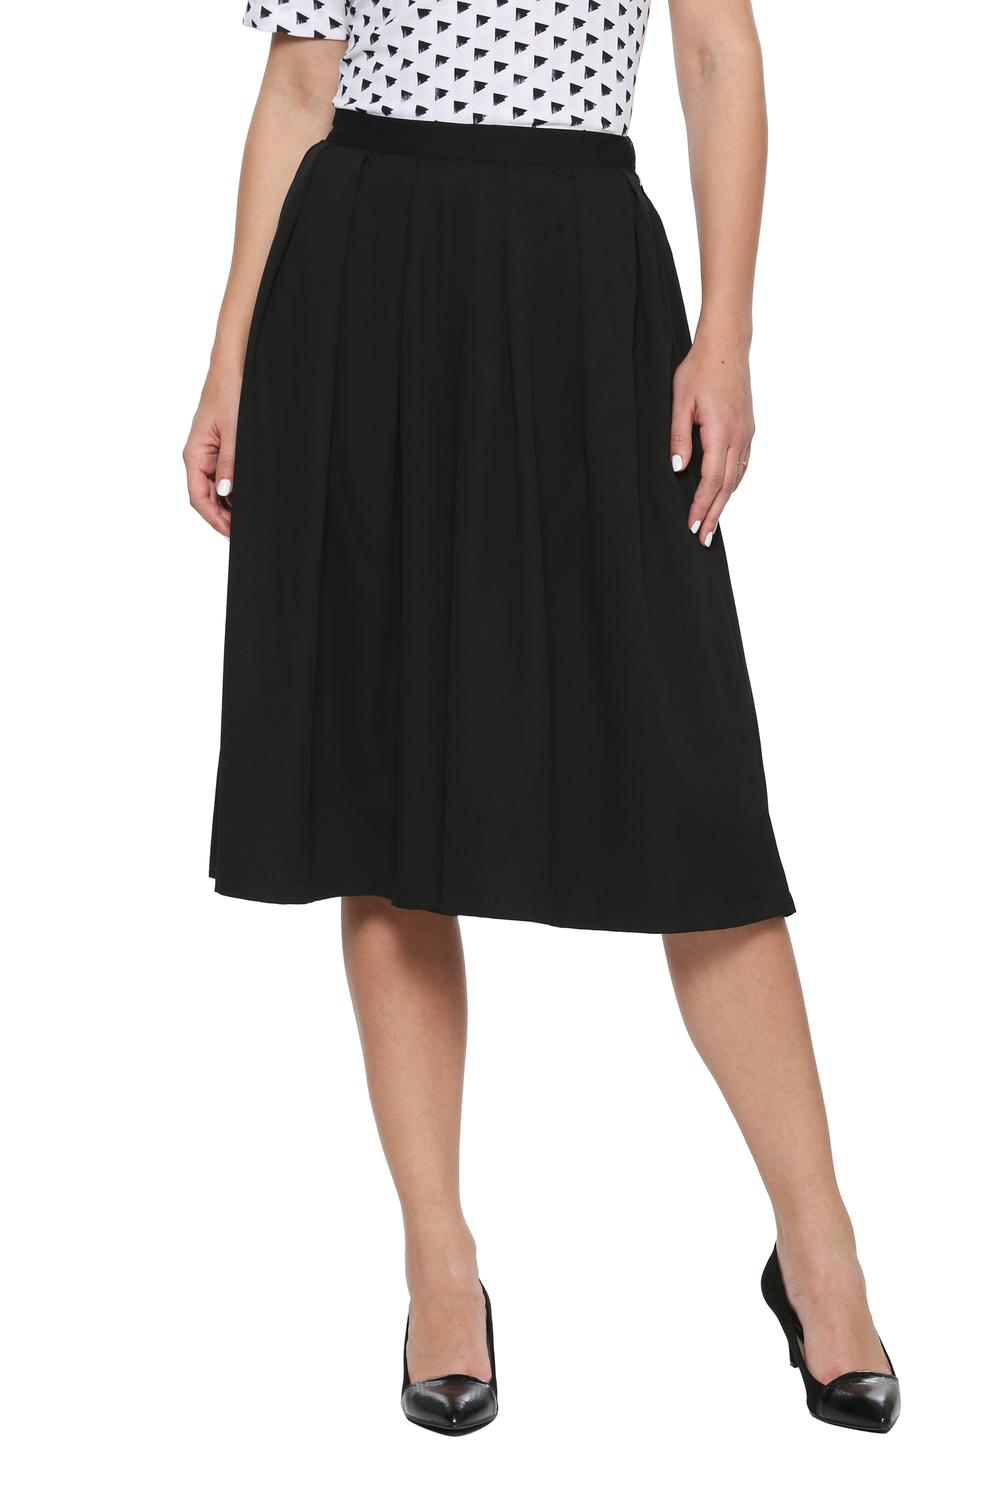 c80da9320d Solly Skirts, Allen Solly Black Skirt for Women at Allensolly.com